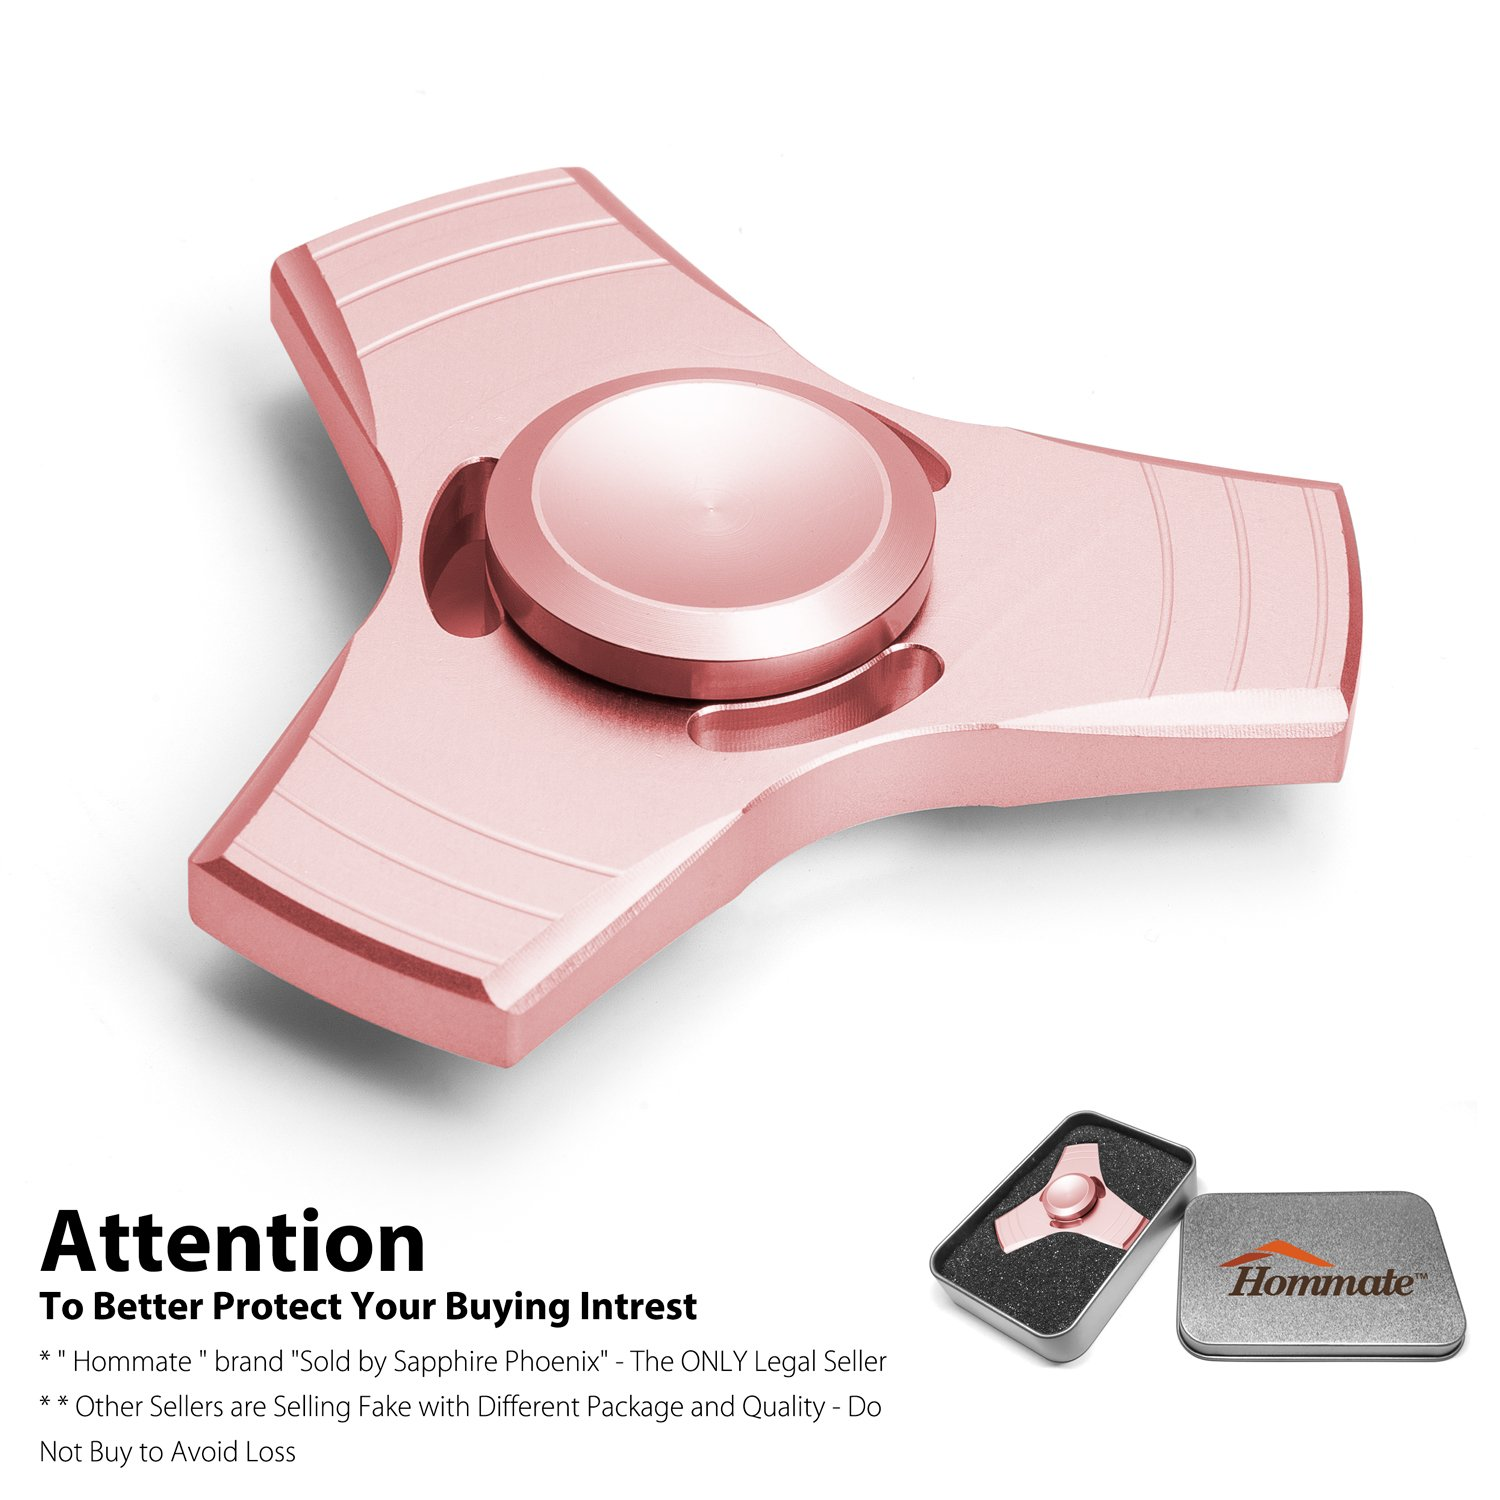 Hommate Finger Spinner Fidget Spinner Toy for EDC ADHD Focus,High Speed,2-3 Min Spins, Finger Playing or Table Top Spin,Optimized Super Smooth German Bearings,Good Balanced (3 Side-Rose golden)